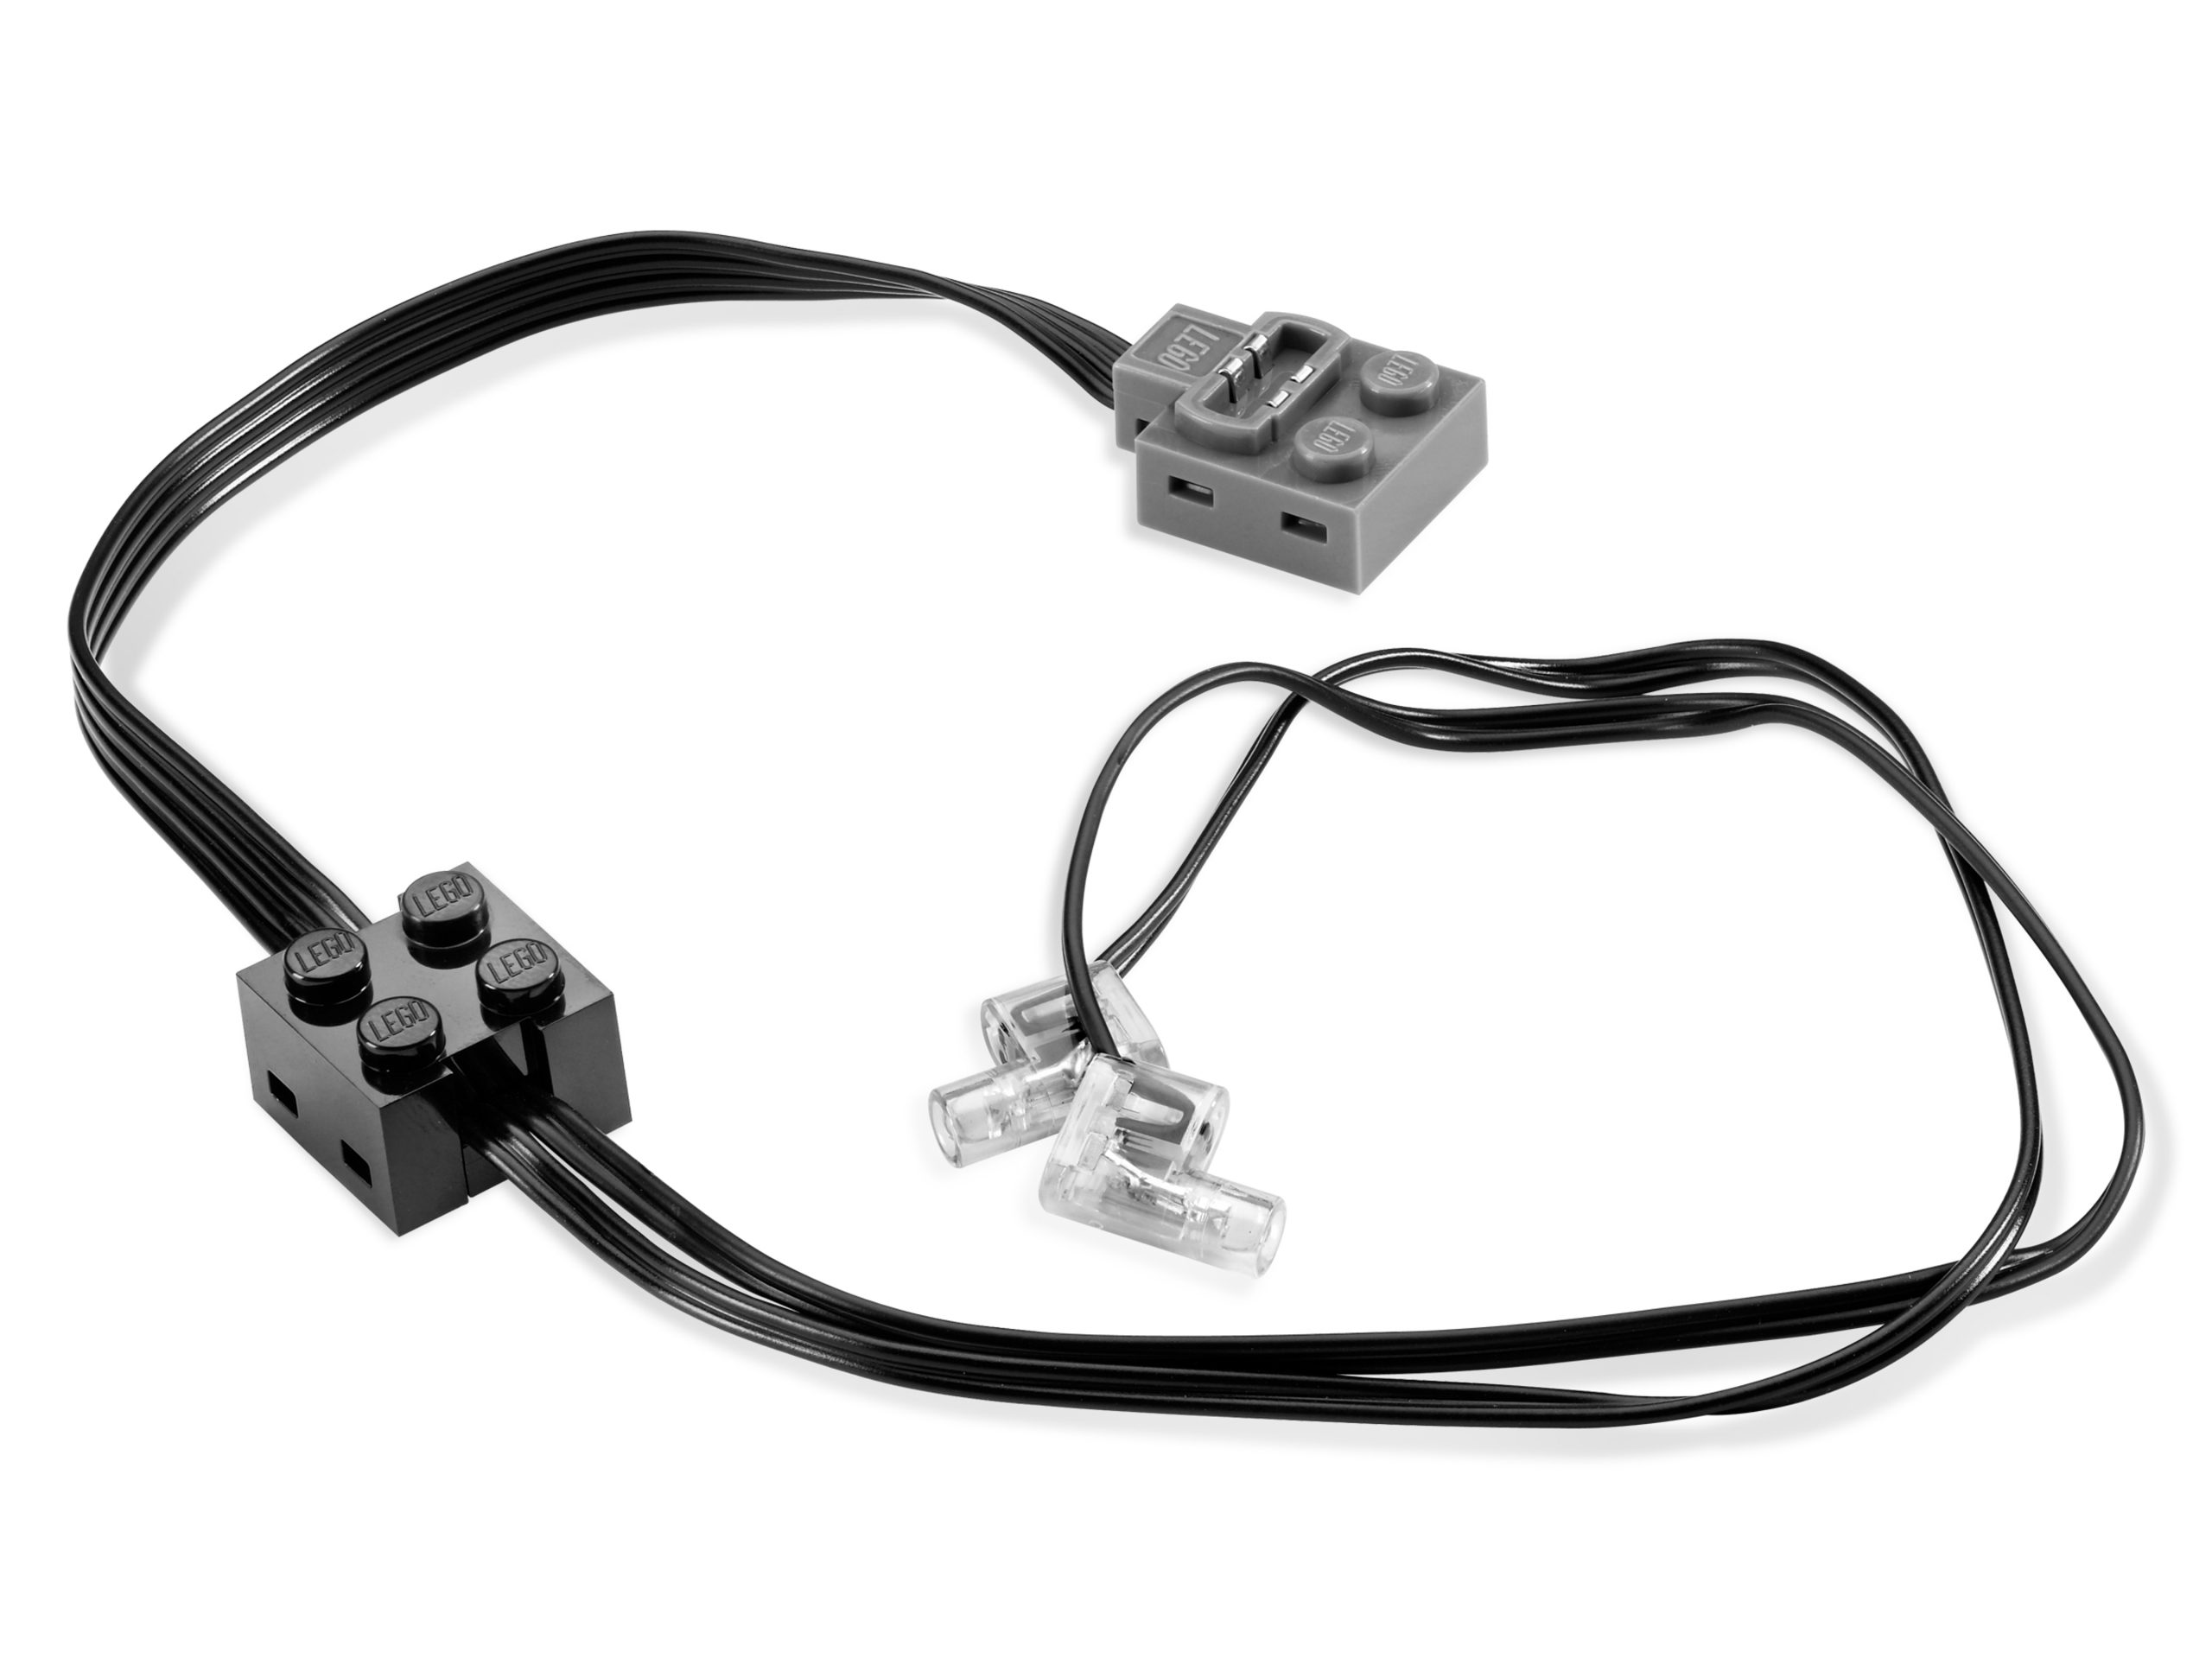 lego 8870 power functions led lichter scaled